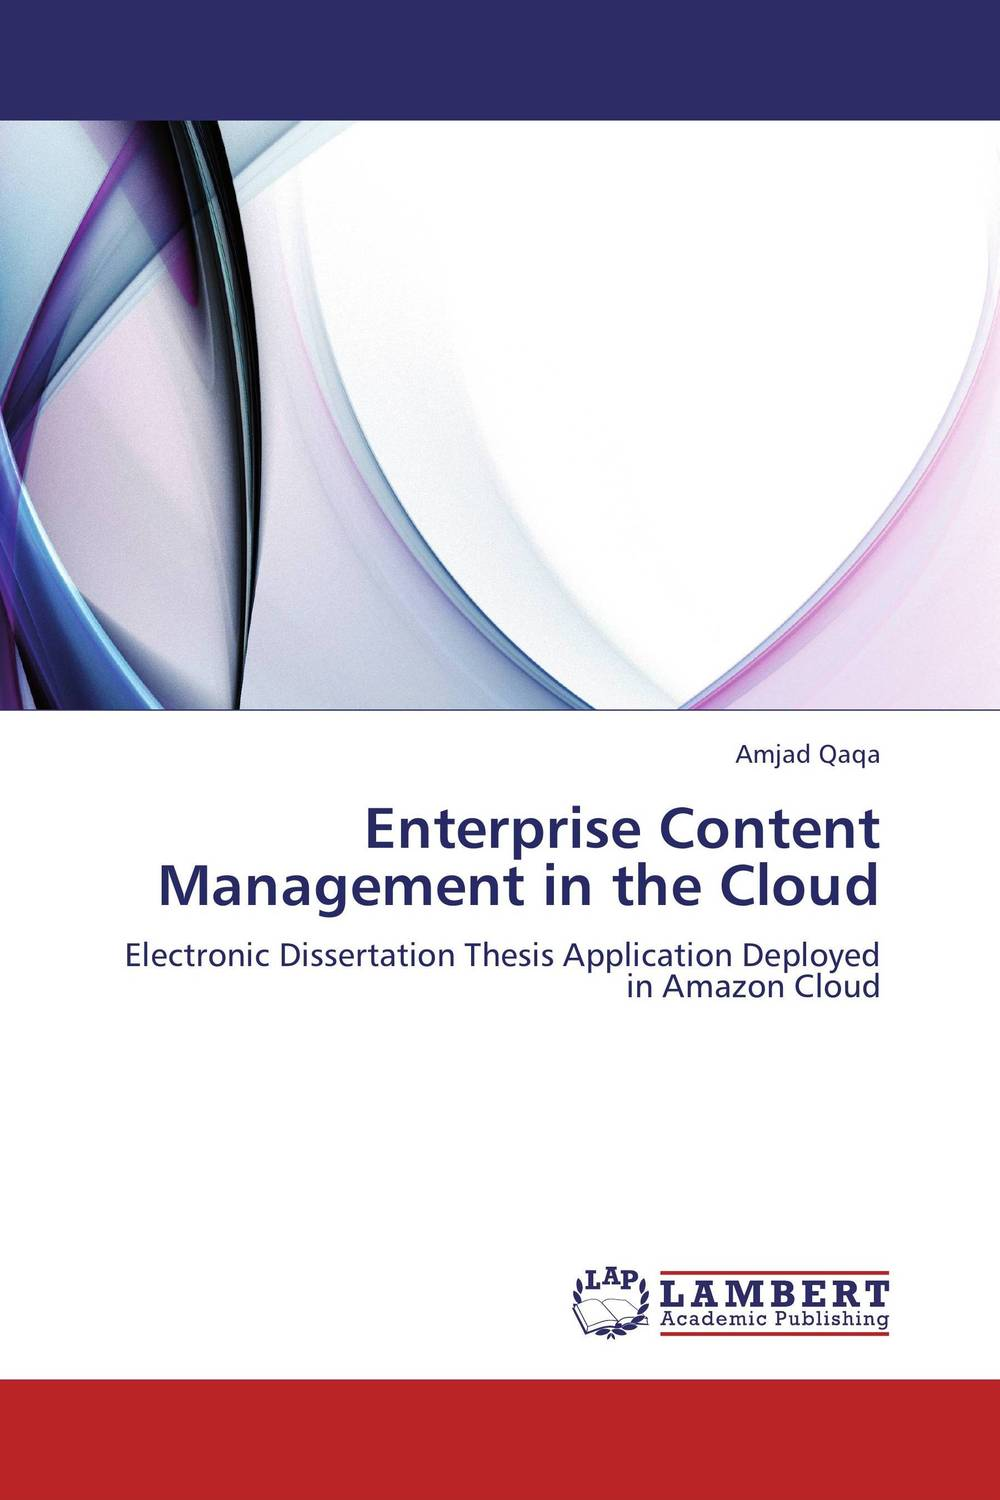 Enterprise Content Management in the Cloud sim segal corporate value of enterprise risk management the next step in business management